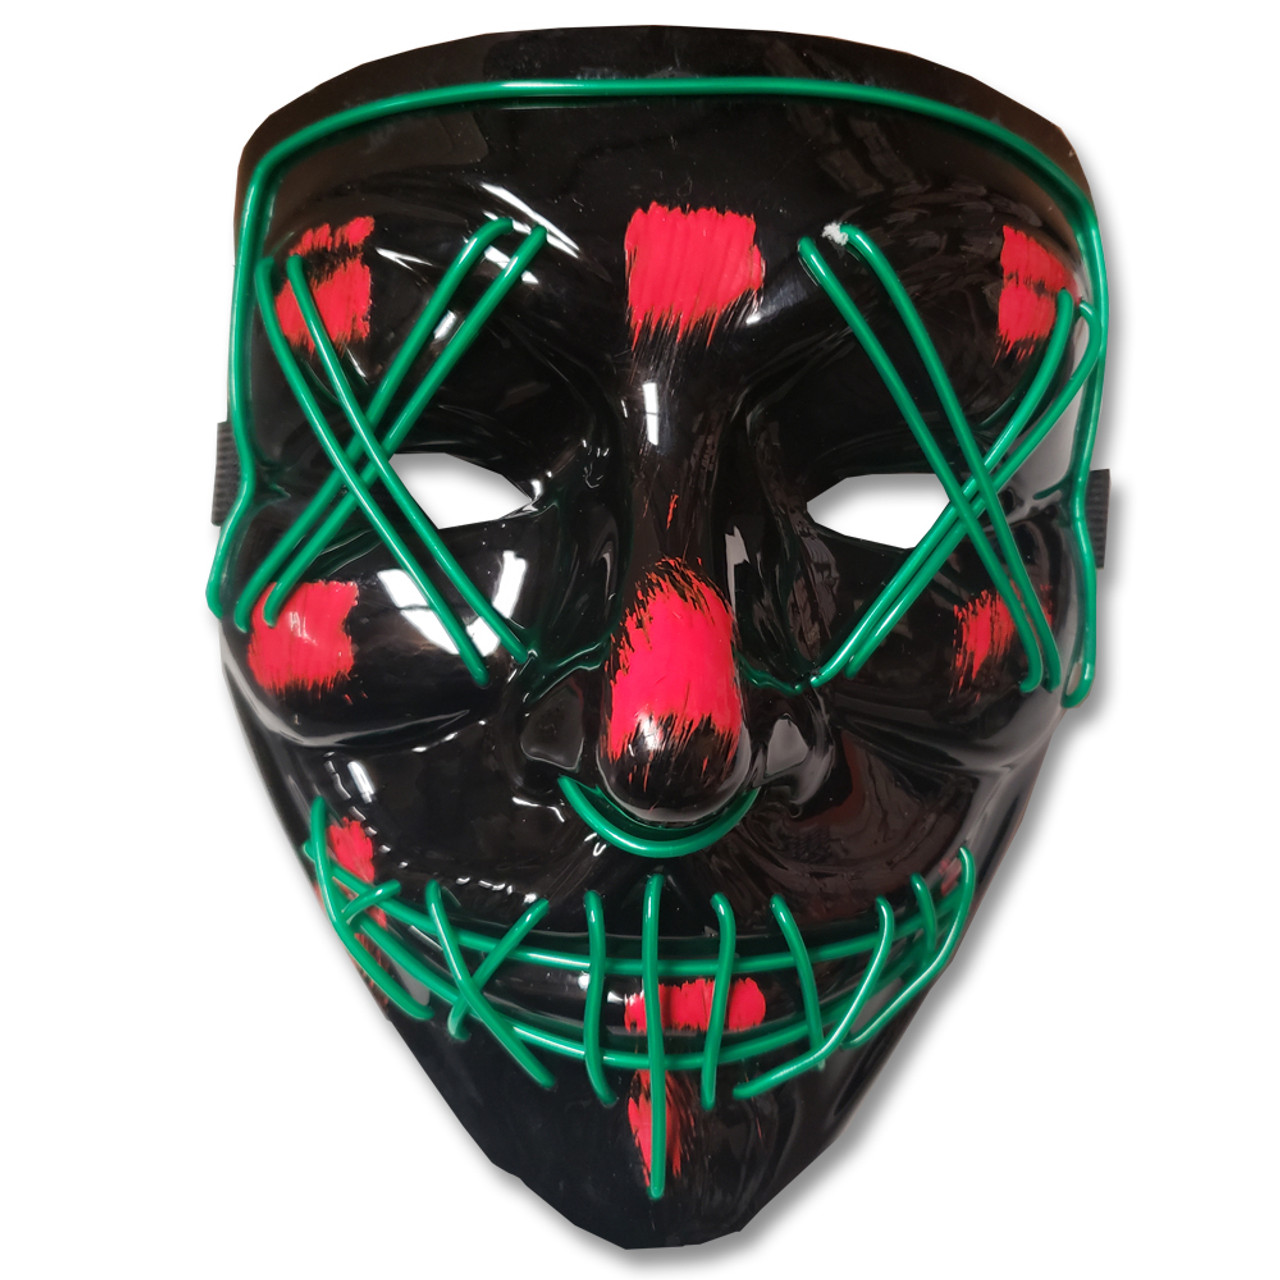 EL Wire Ghost Mask Slit Mouth Light Up Glowing LED Mask Halloween Cosplay Glowing Green